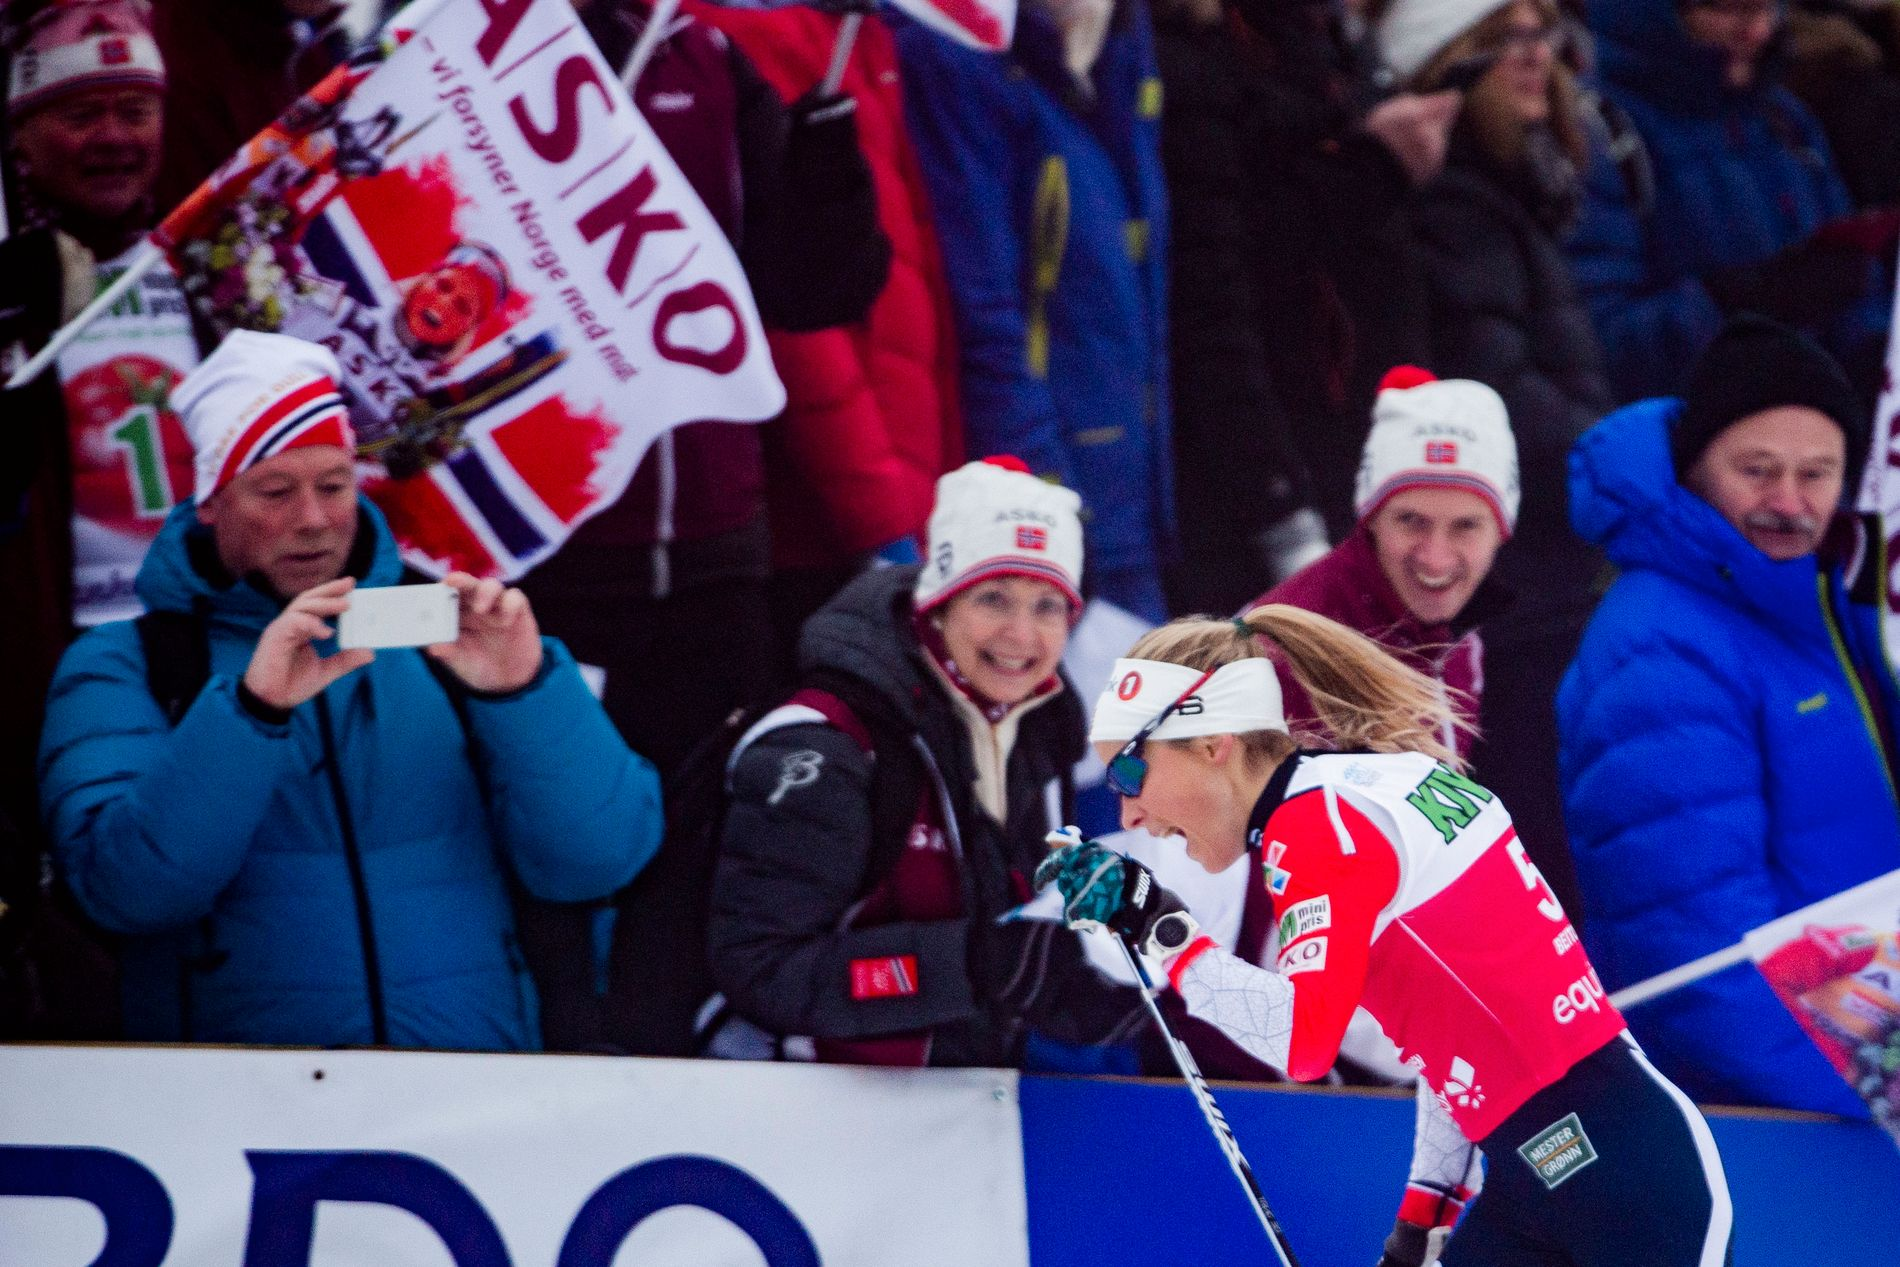 So Johaug Is Still A Star Among The Norwegian People It Does Not Seem To Be A Fool Or Cheating Halids